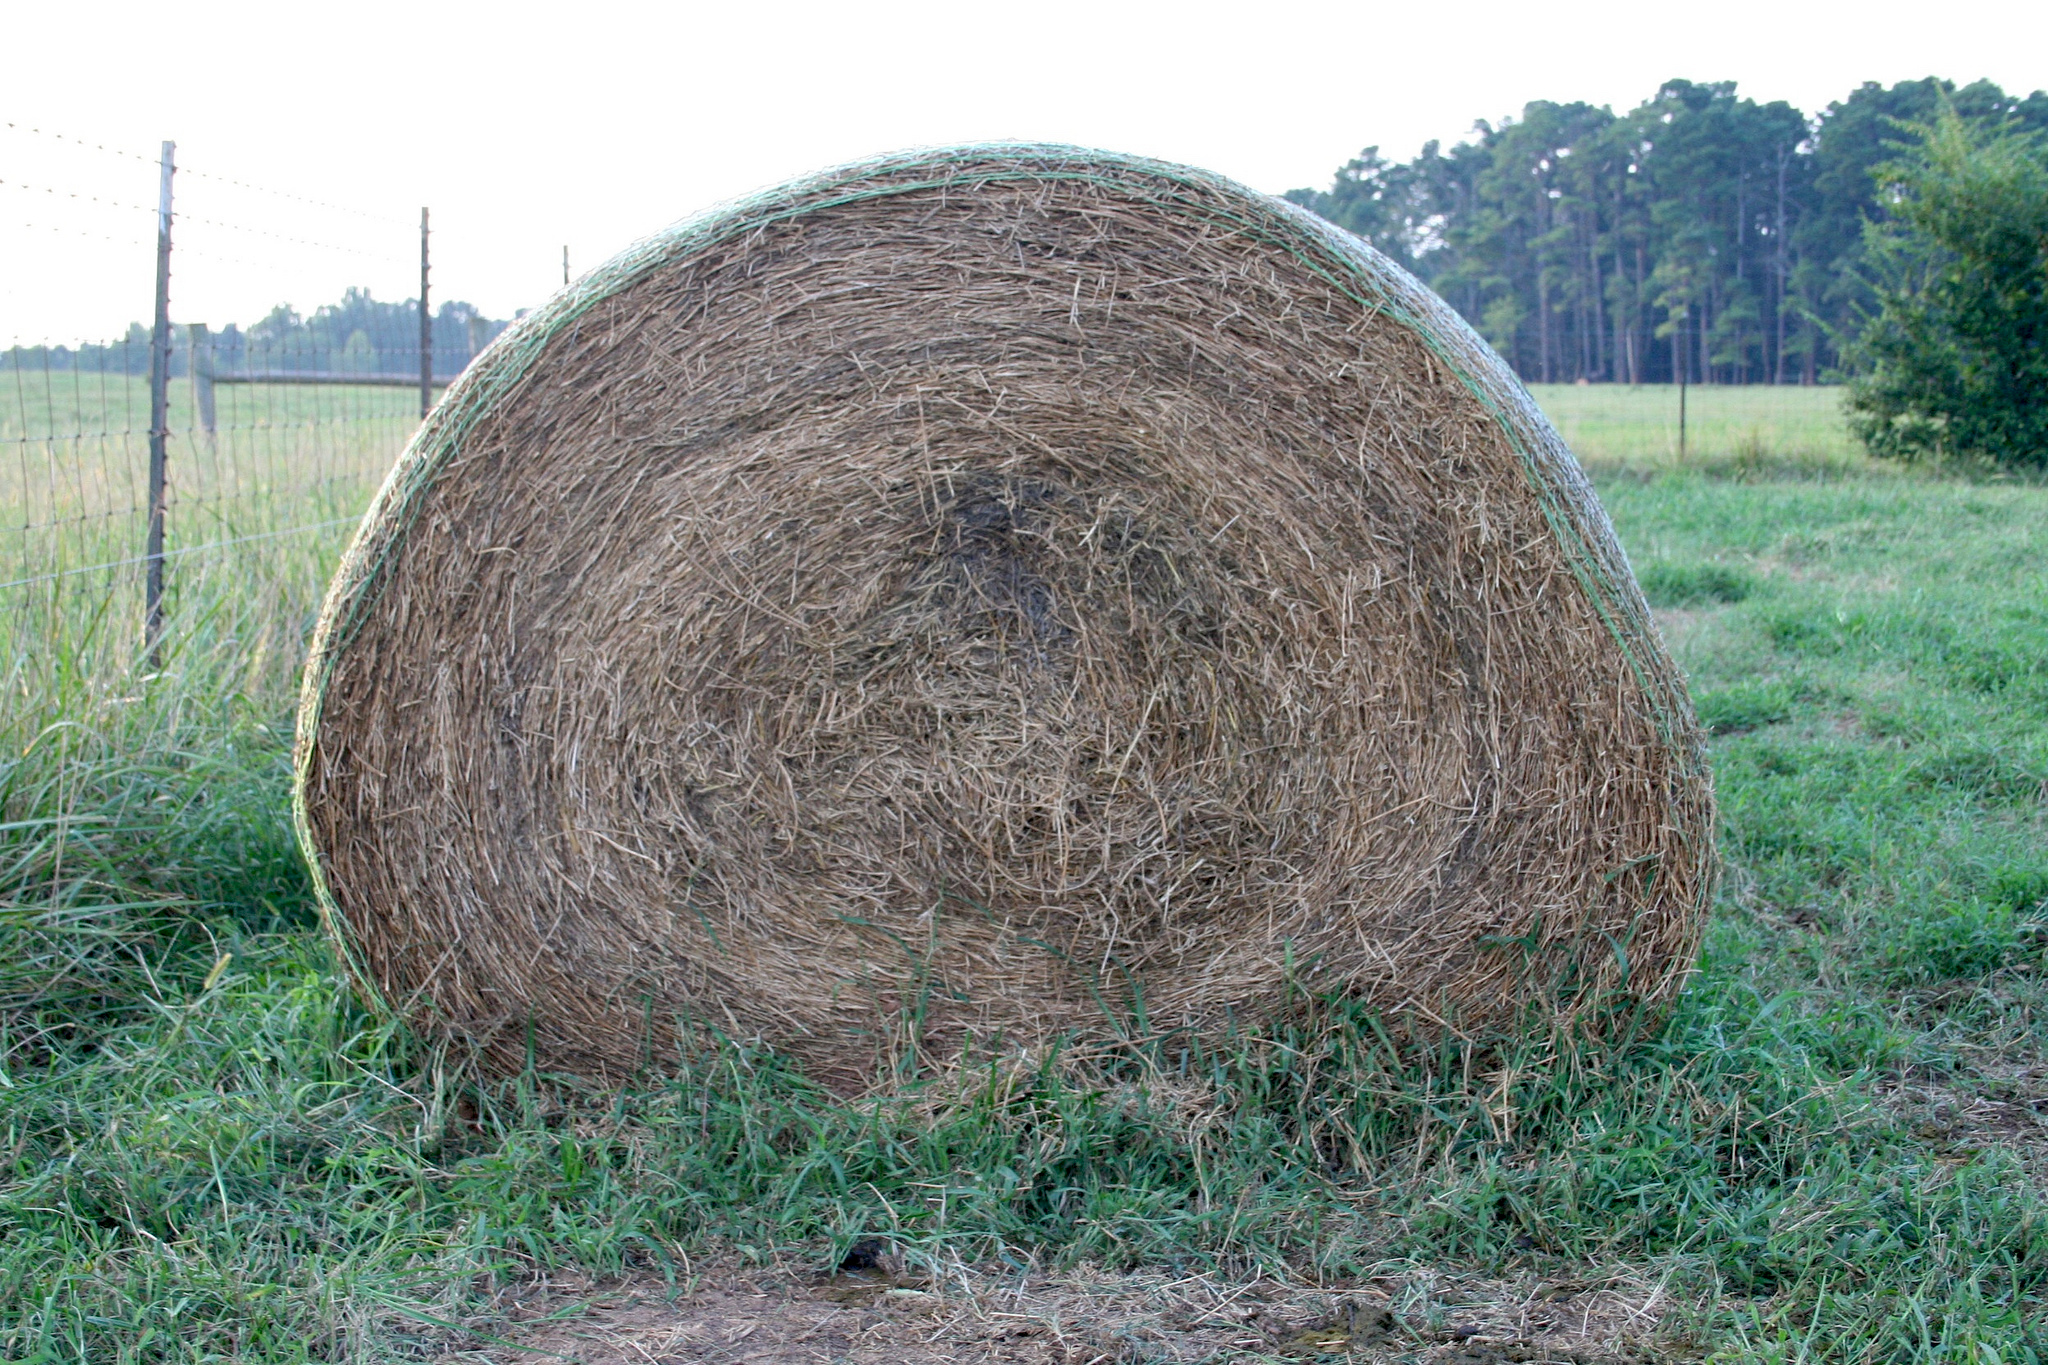 To determine the quality of hay, Georgia farmers trust forage tests from the University of Georgia Agricultural and Environmental Services Laboratories in Athens, Georgia. The lab provides an estimate of Relative Forage Quality (RFQ). This value is a single, easy-to-interpret number that improves a producer's understanding of forage quality and helps to establish a fair market value for the product.